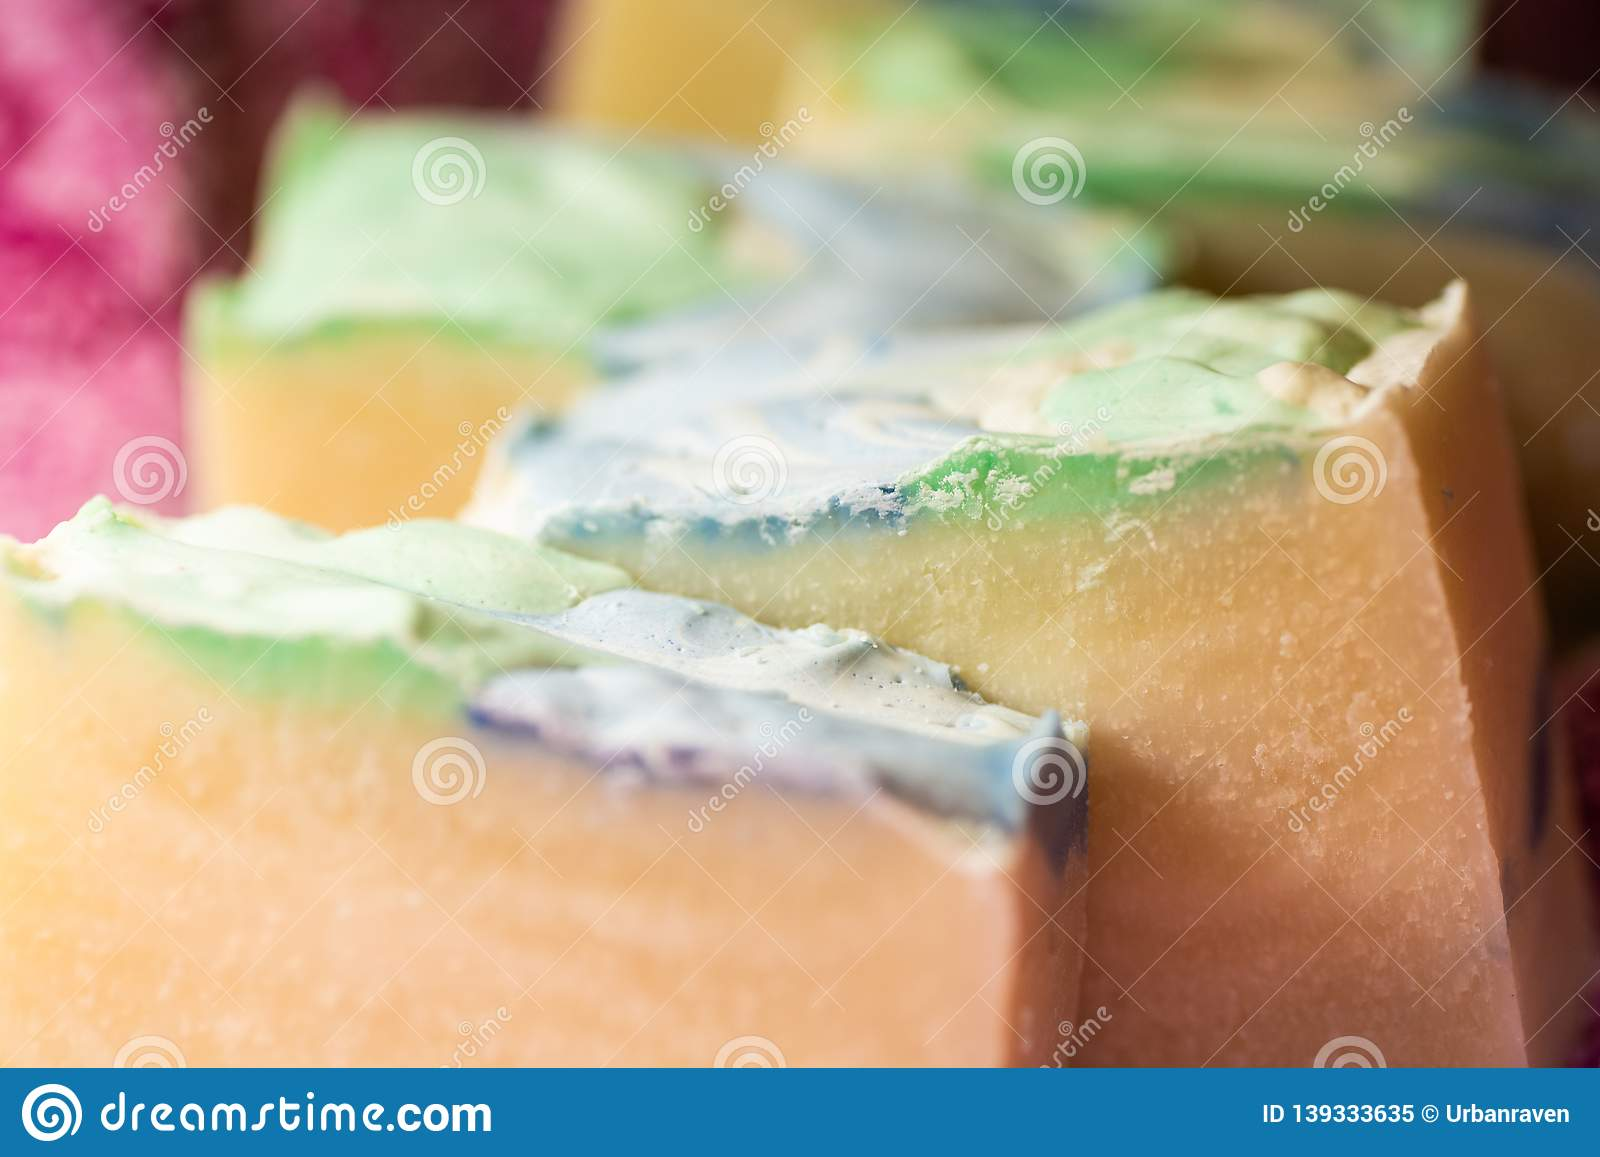 Hand crafted soaps with colorful tops